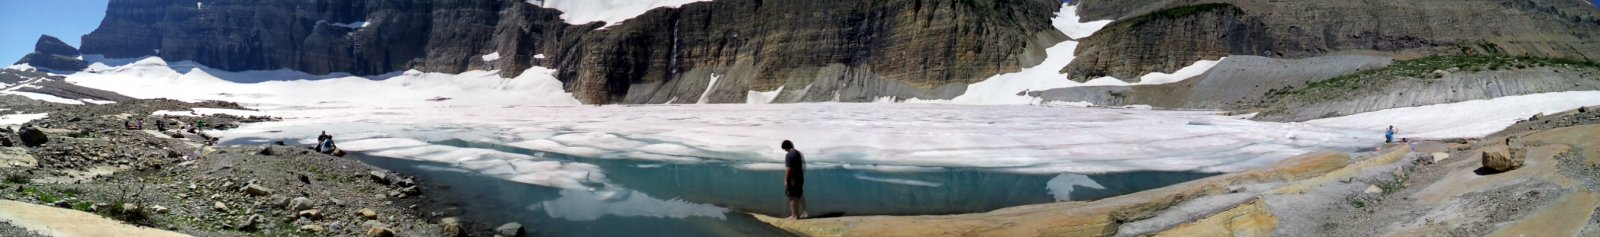 Click image for larger version  Name:2013-07-24 pan of grinnell glacier.jpg Views:73 Size:96.6 KB ID:192525